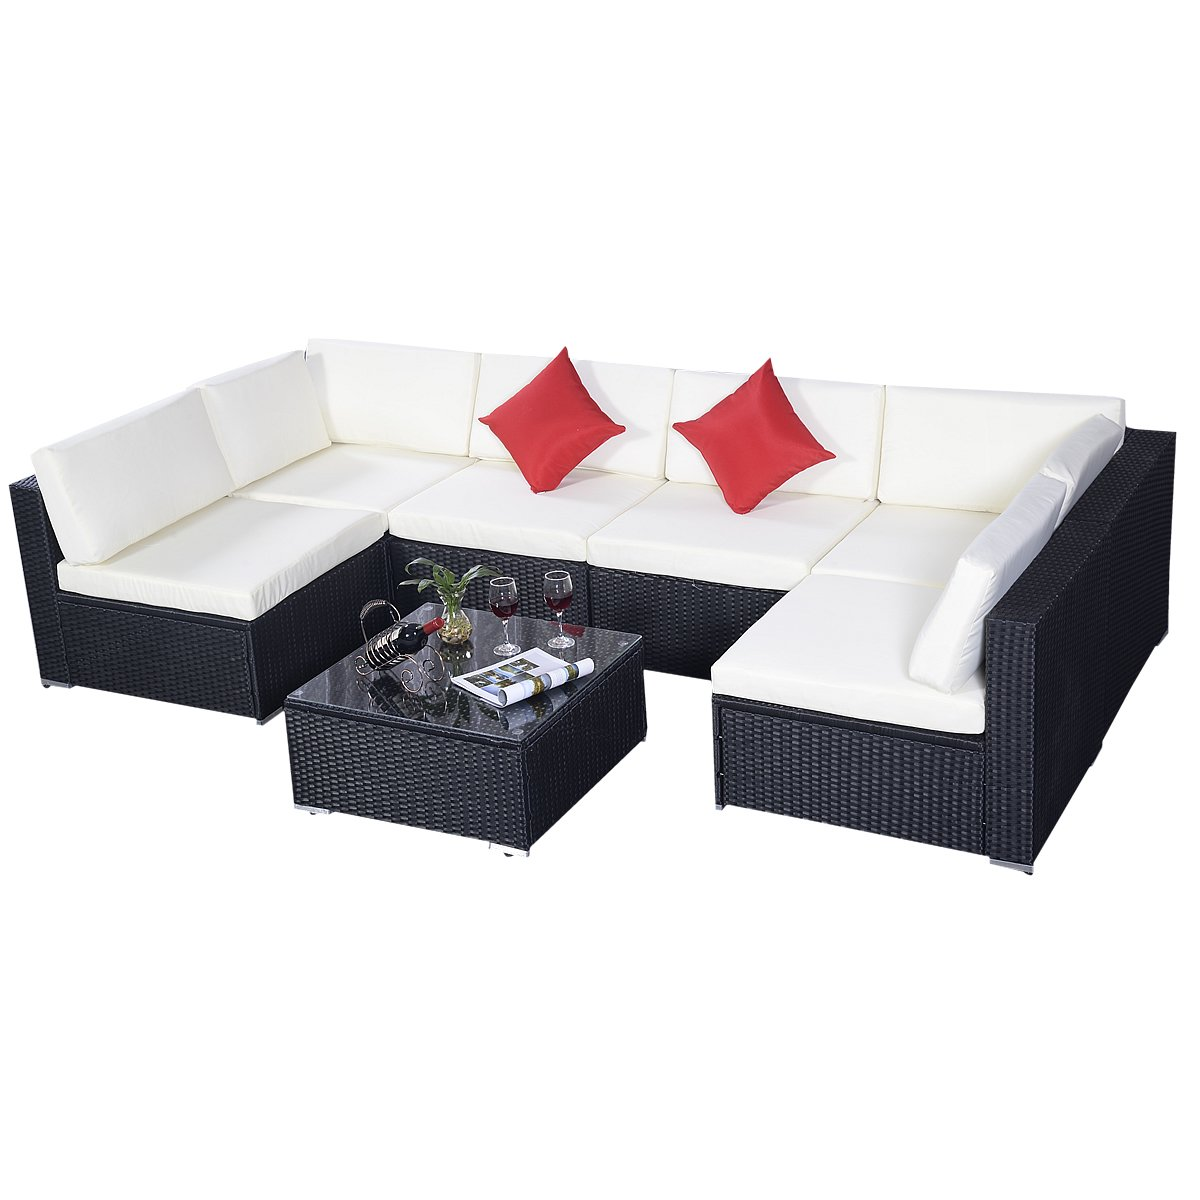 poly rattan set gartenm bel lounge polyrattan sitzgruppe. Black Bedroom Furniture Sets. Home Design Ideas